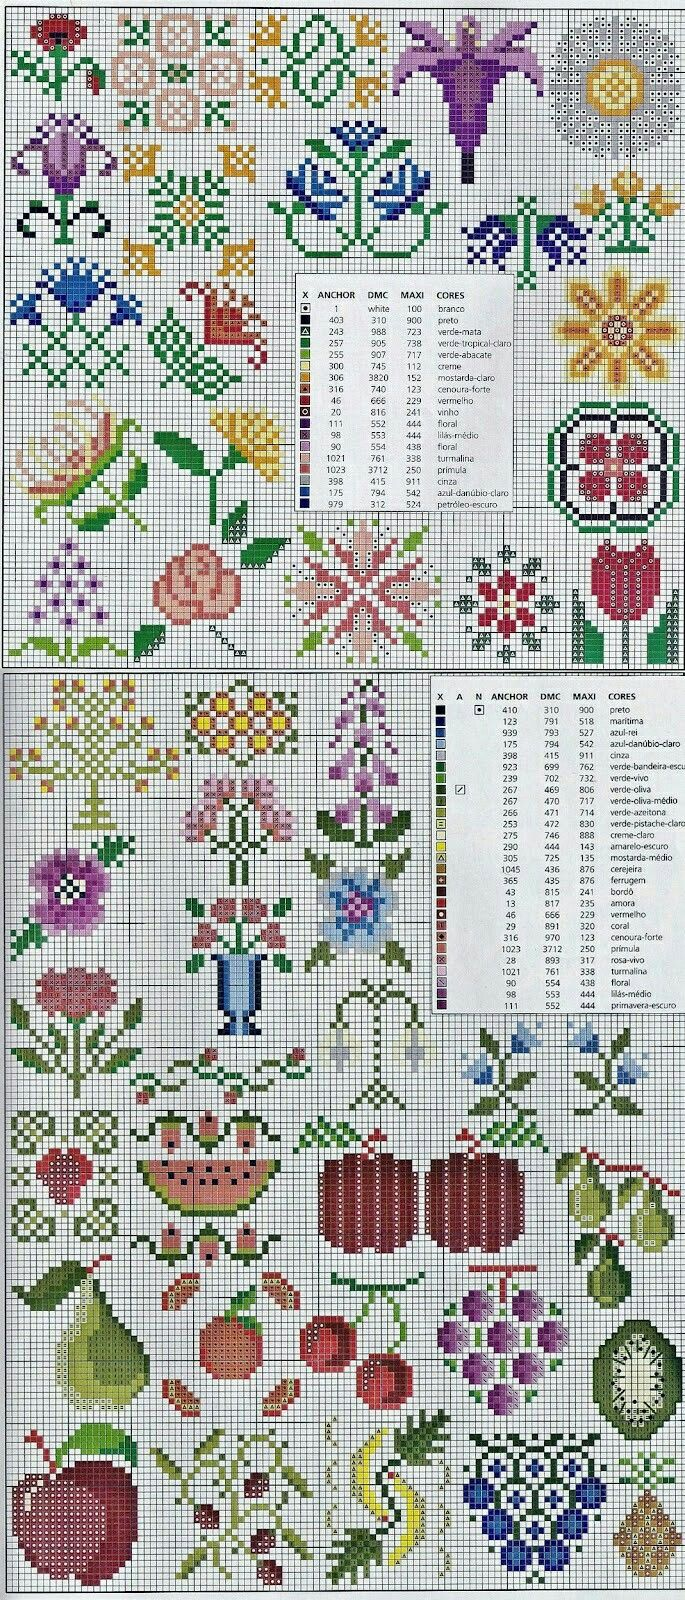 Cross stitch - fruits & flowers